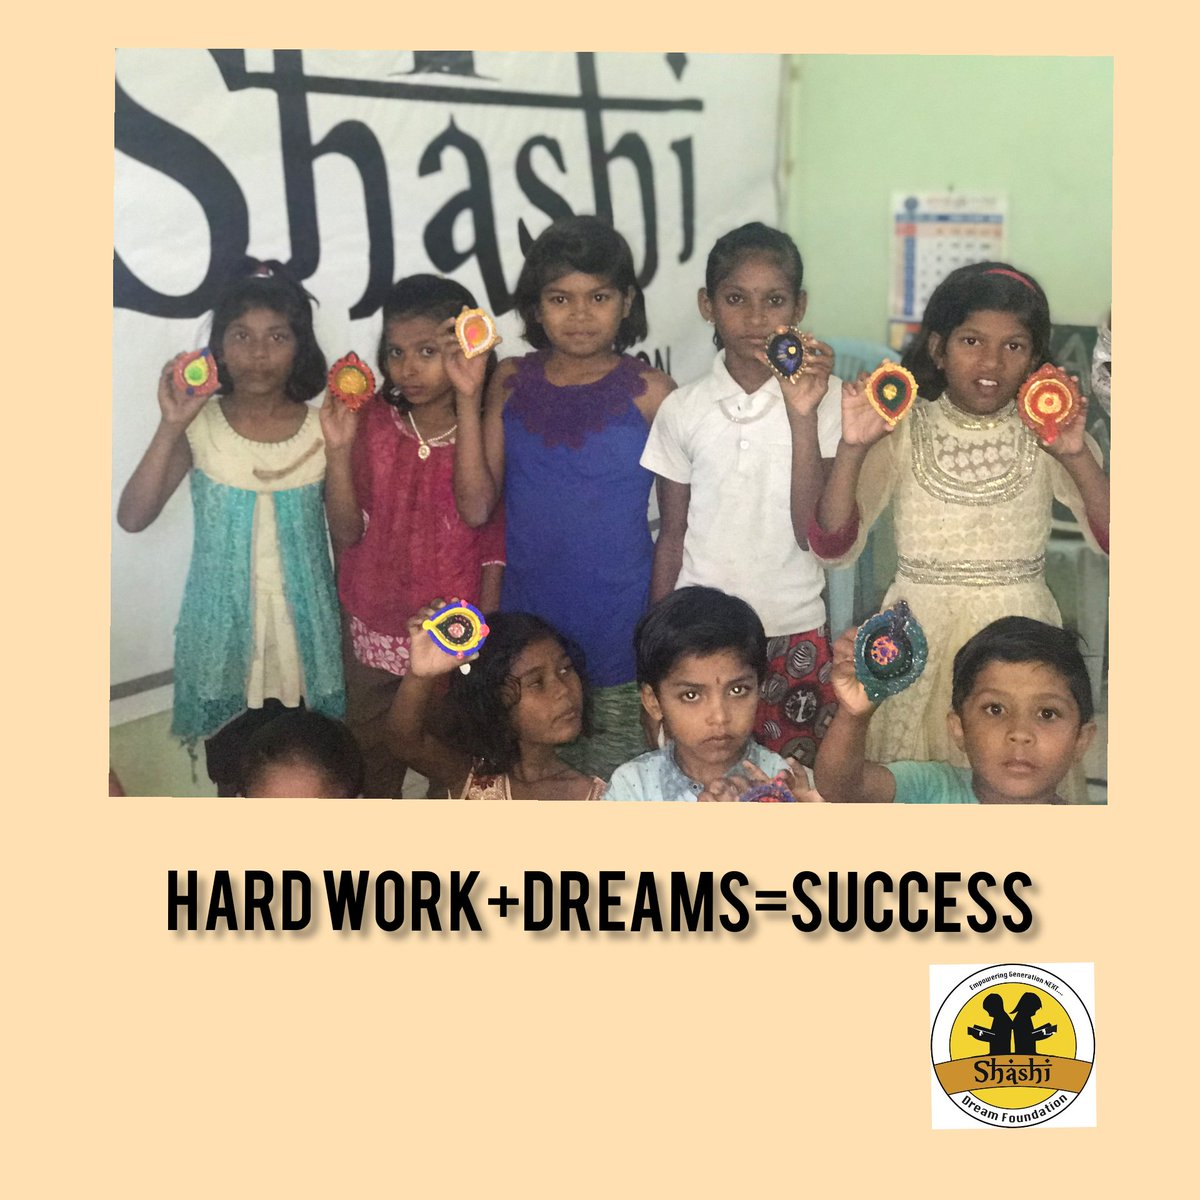 Success is a mixture of hard work and Dreams We, through our initiatives, are trying to make sure that these dreams are not left behind for not so privileged students!  #dreams #success #SocialWork #shashidreamfoundation #sdf https://t.co/7mwaa3s0P0